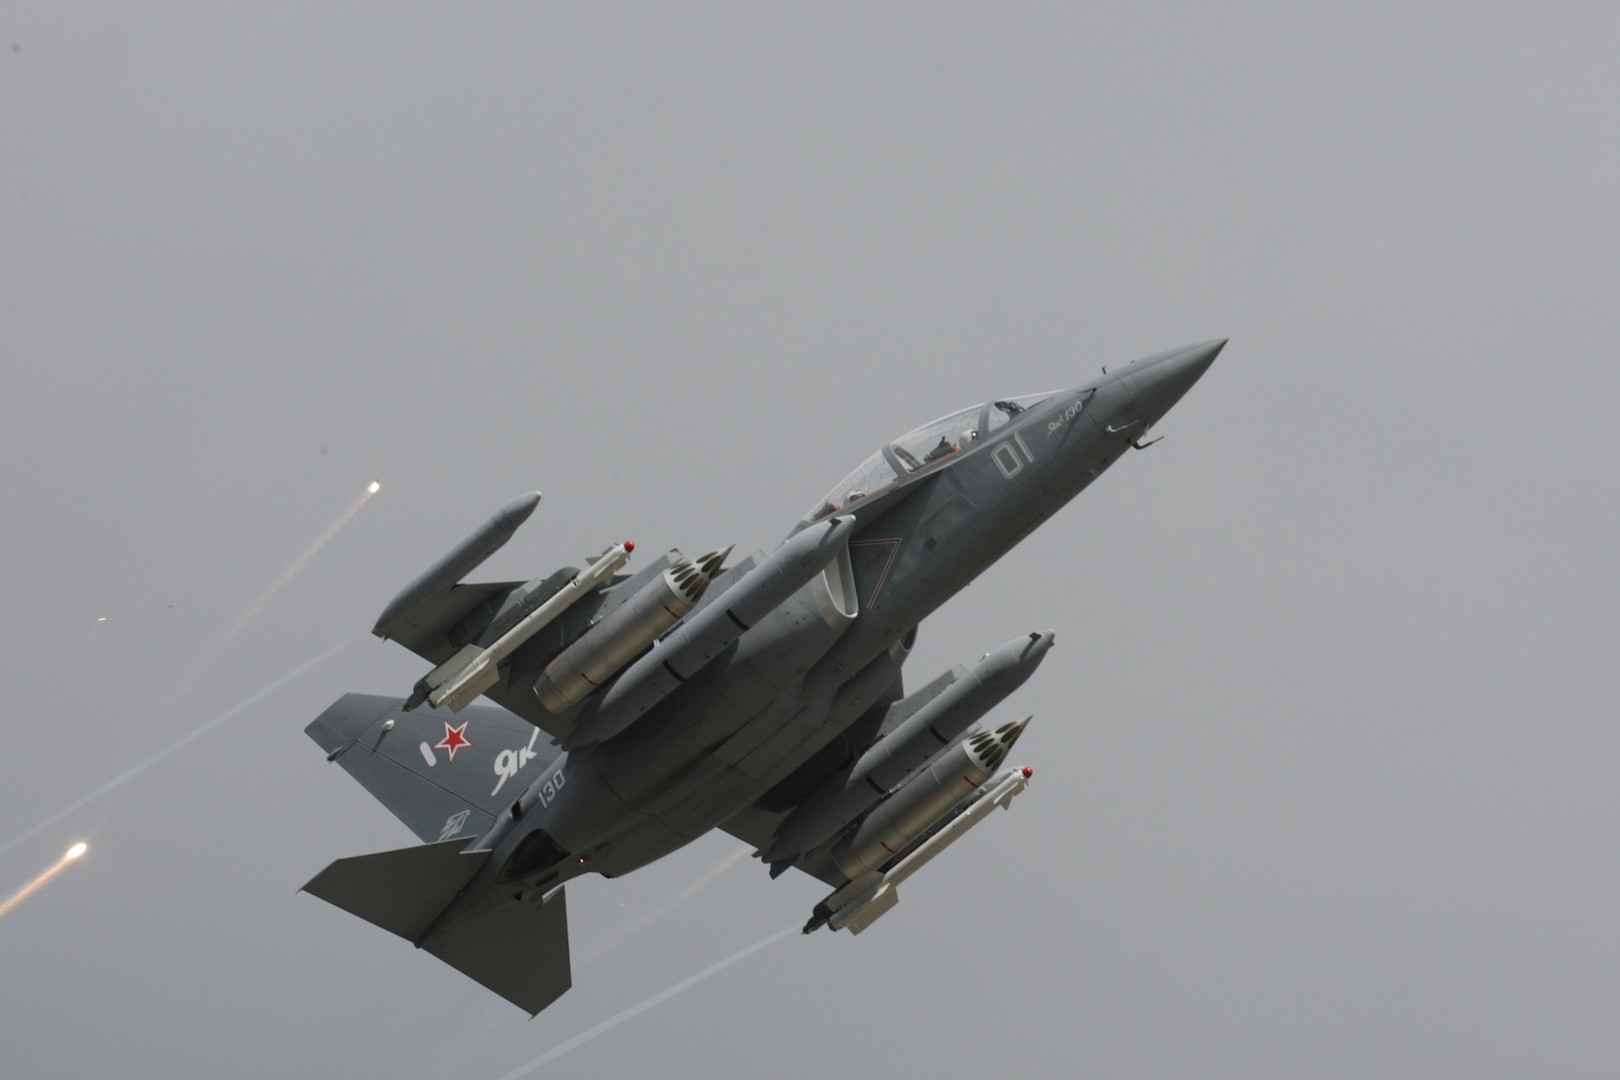 Myanmar received the first three Yak-130 aircraft under the contract in 2015